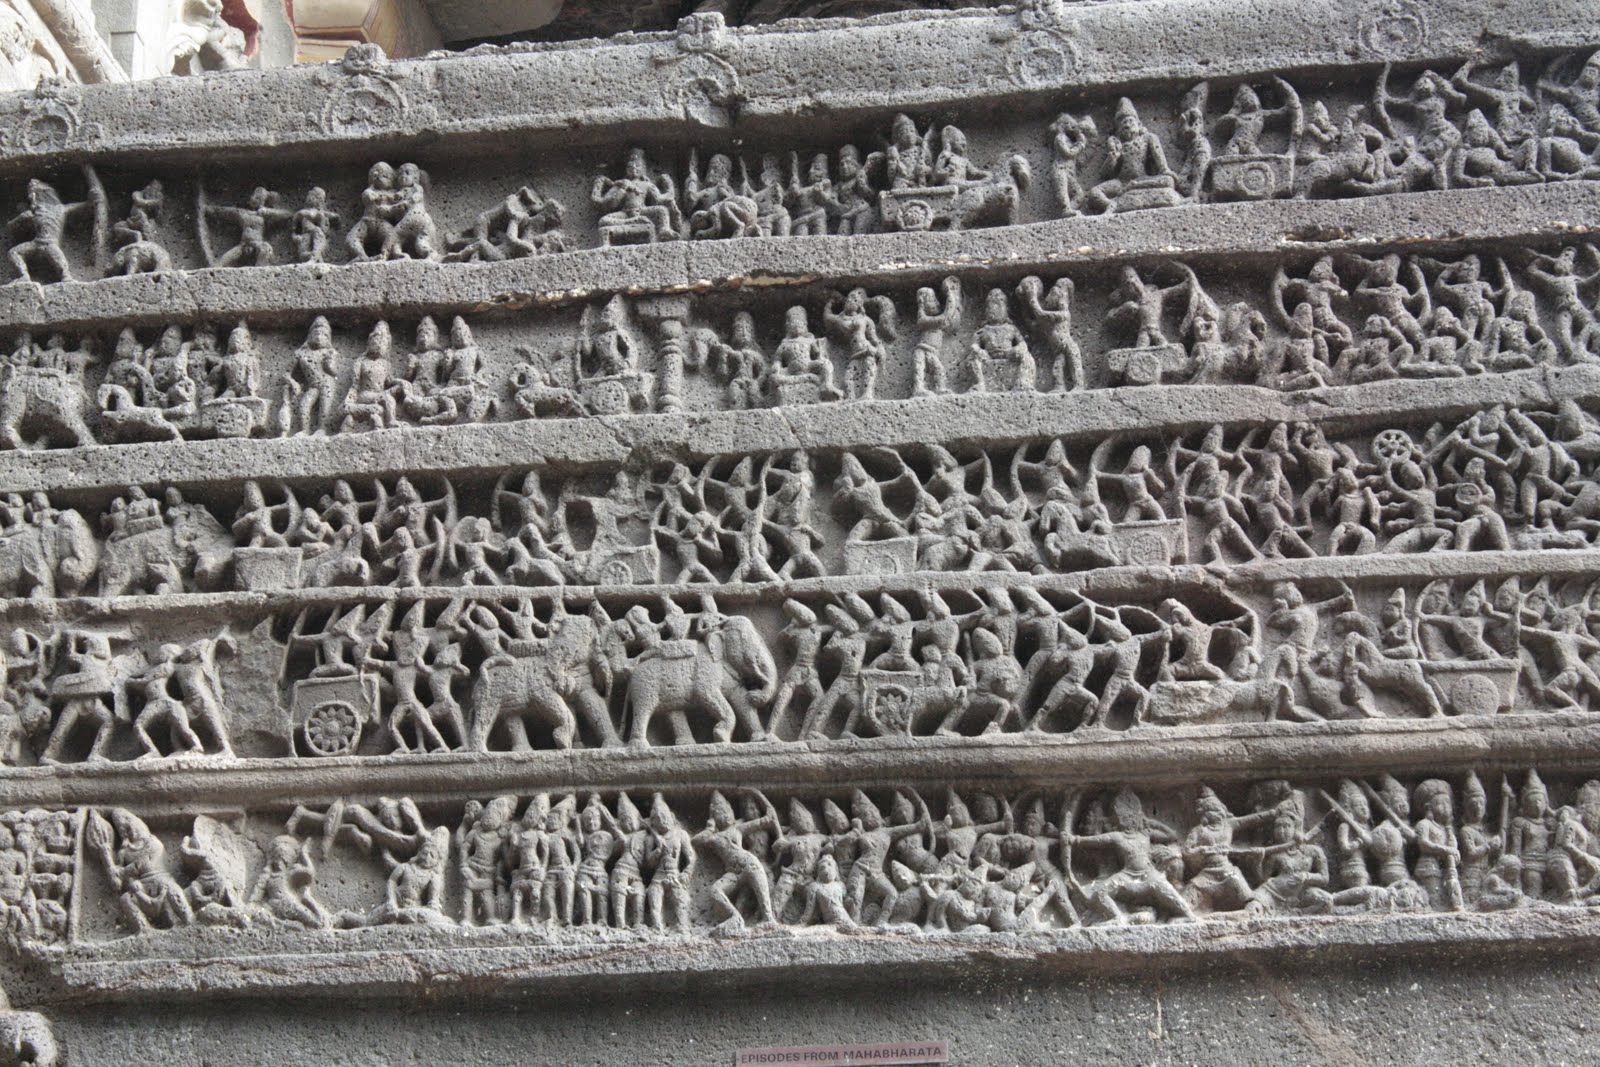 ellora times case Find and save ideas about ellora on pinterest | see more ideas about ajanta caves, hindu india and caves in india honestly that's what u get for buying a grass phone case 26 times history was perfectly summed up by tumblr see more from buzzfeedcom.